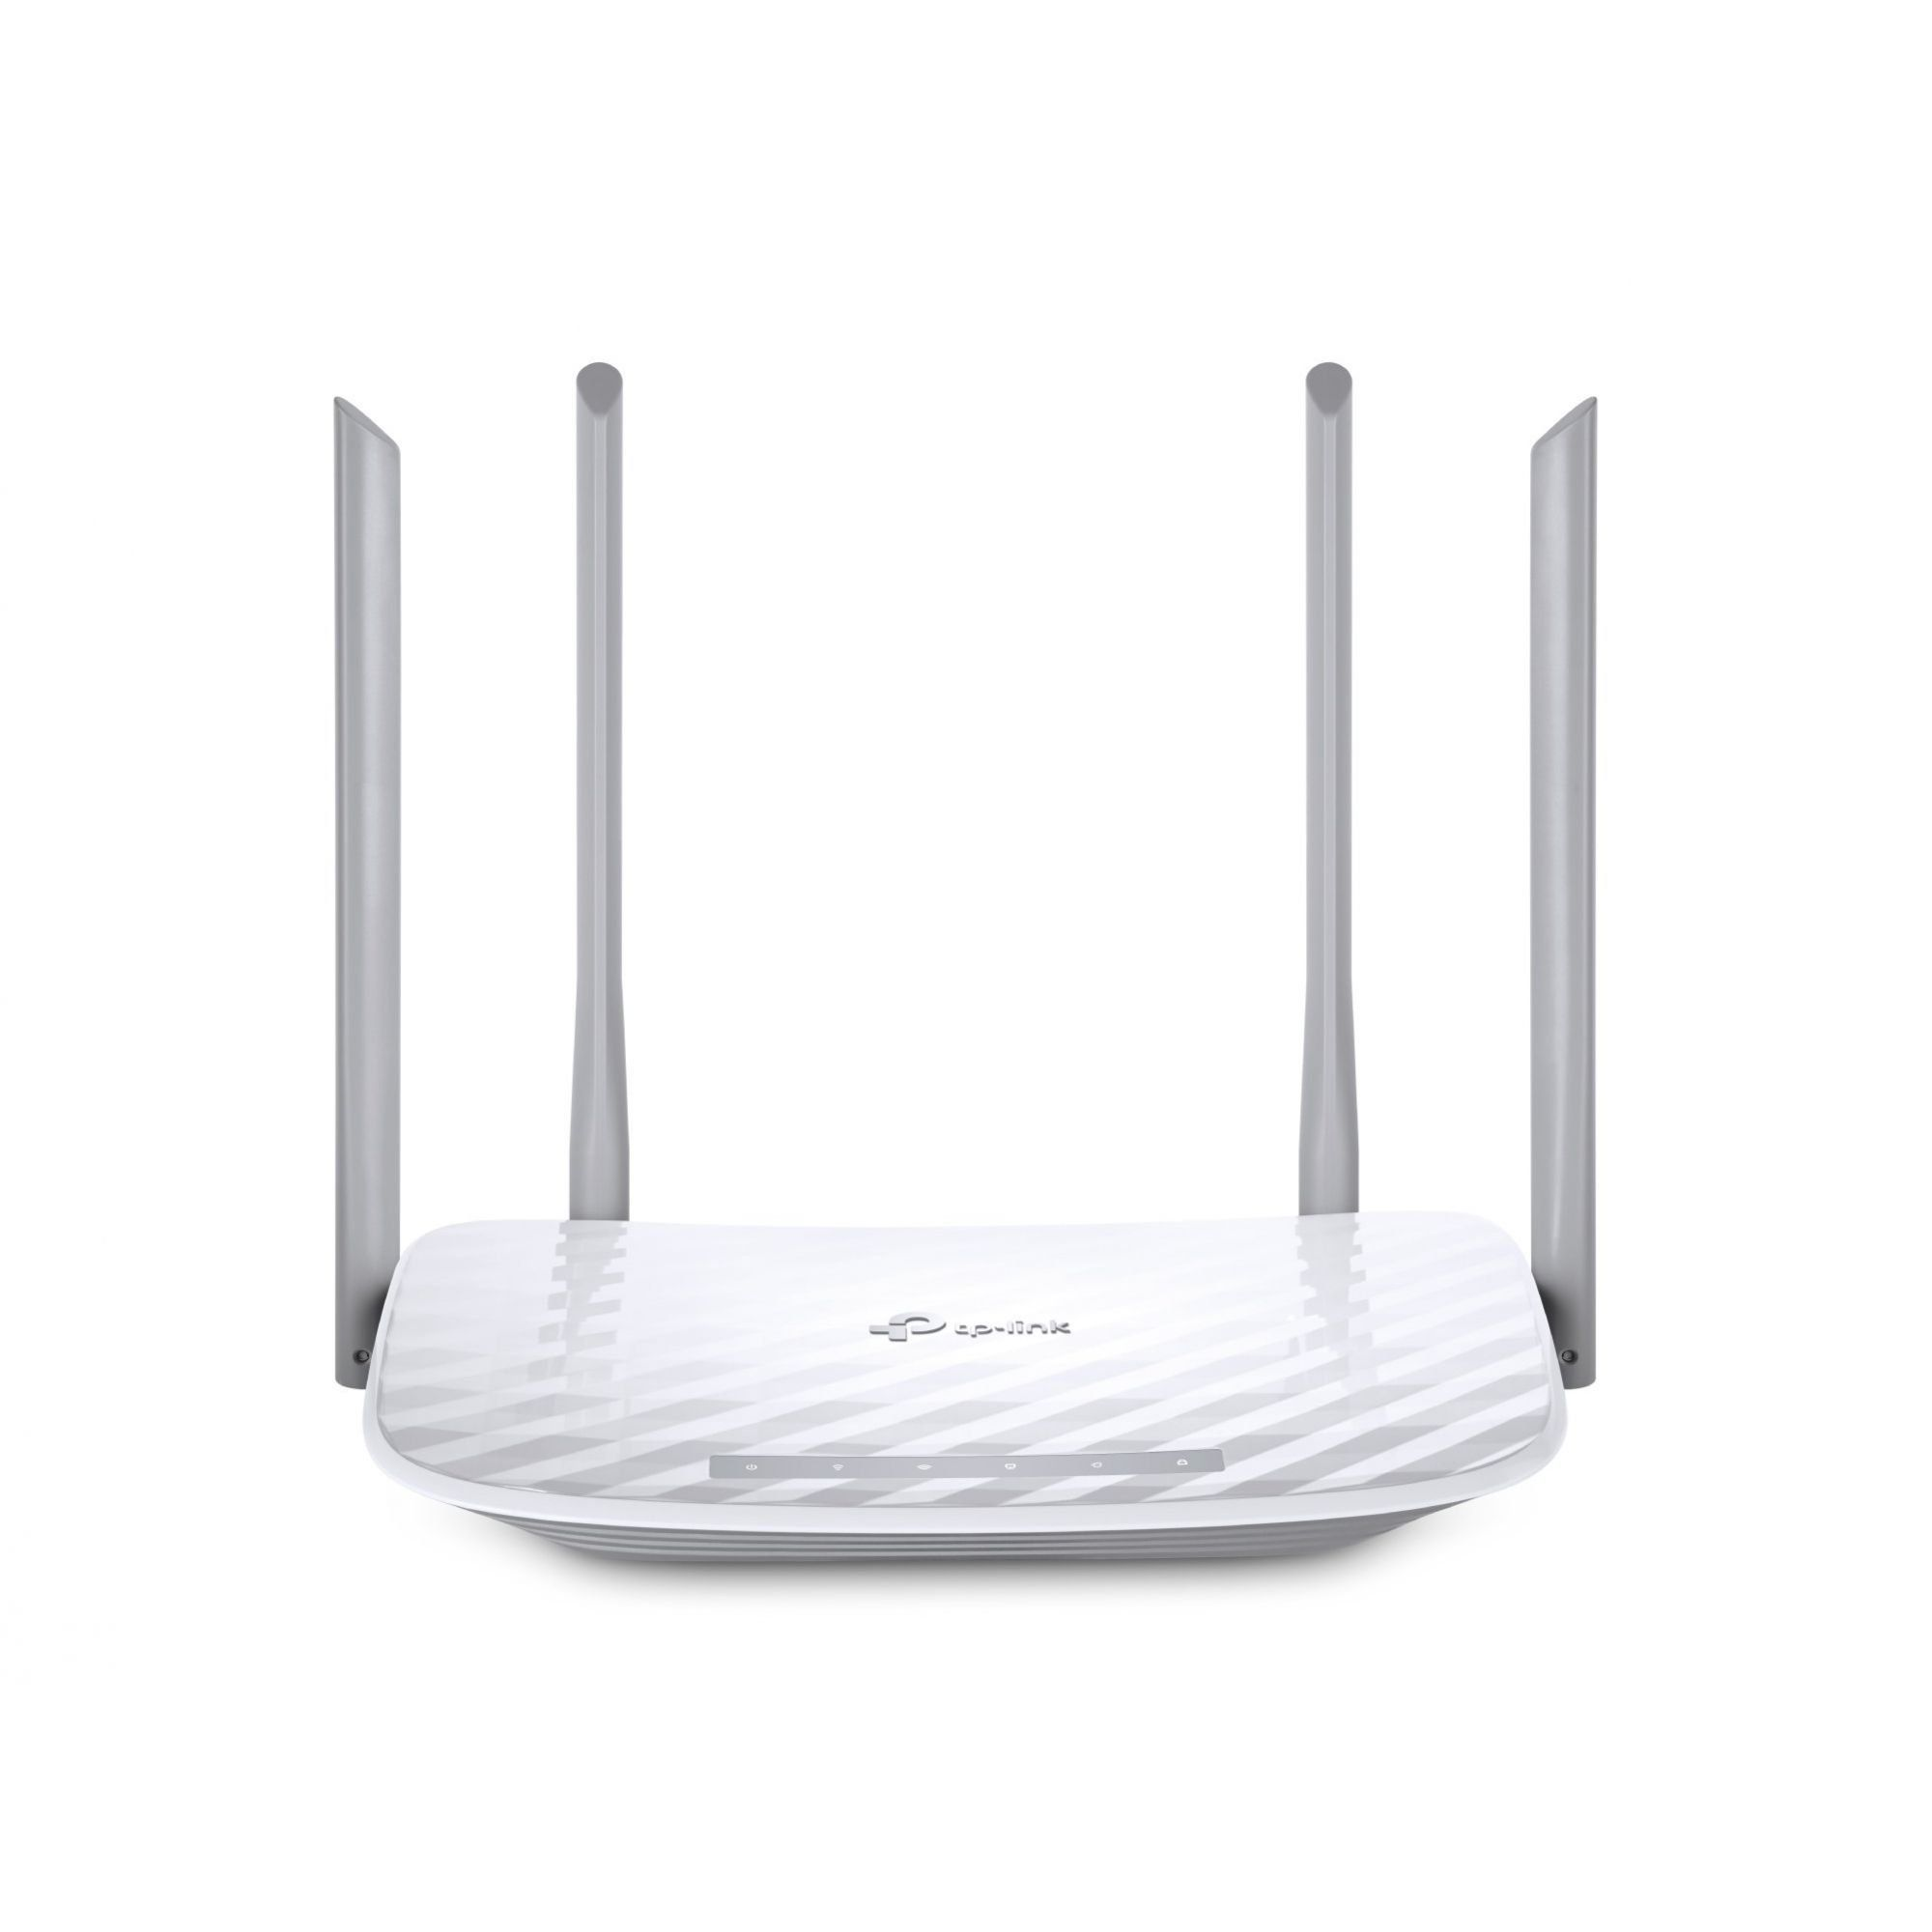 Roteador Wireless TP-Link Archer C5W AC1200 1200MBPS Dual Band